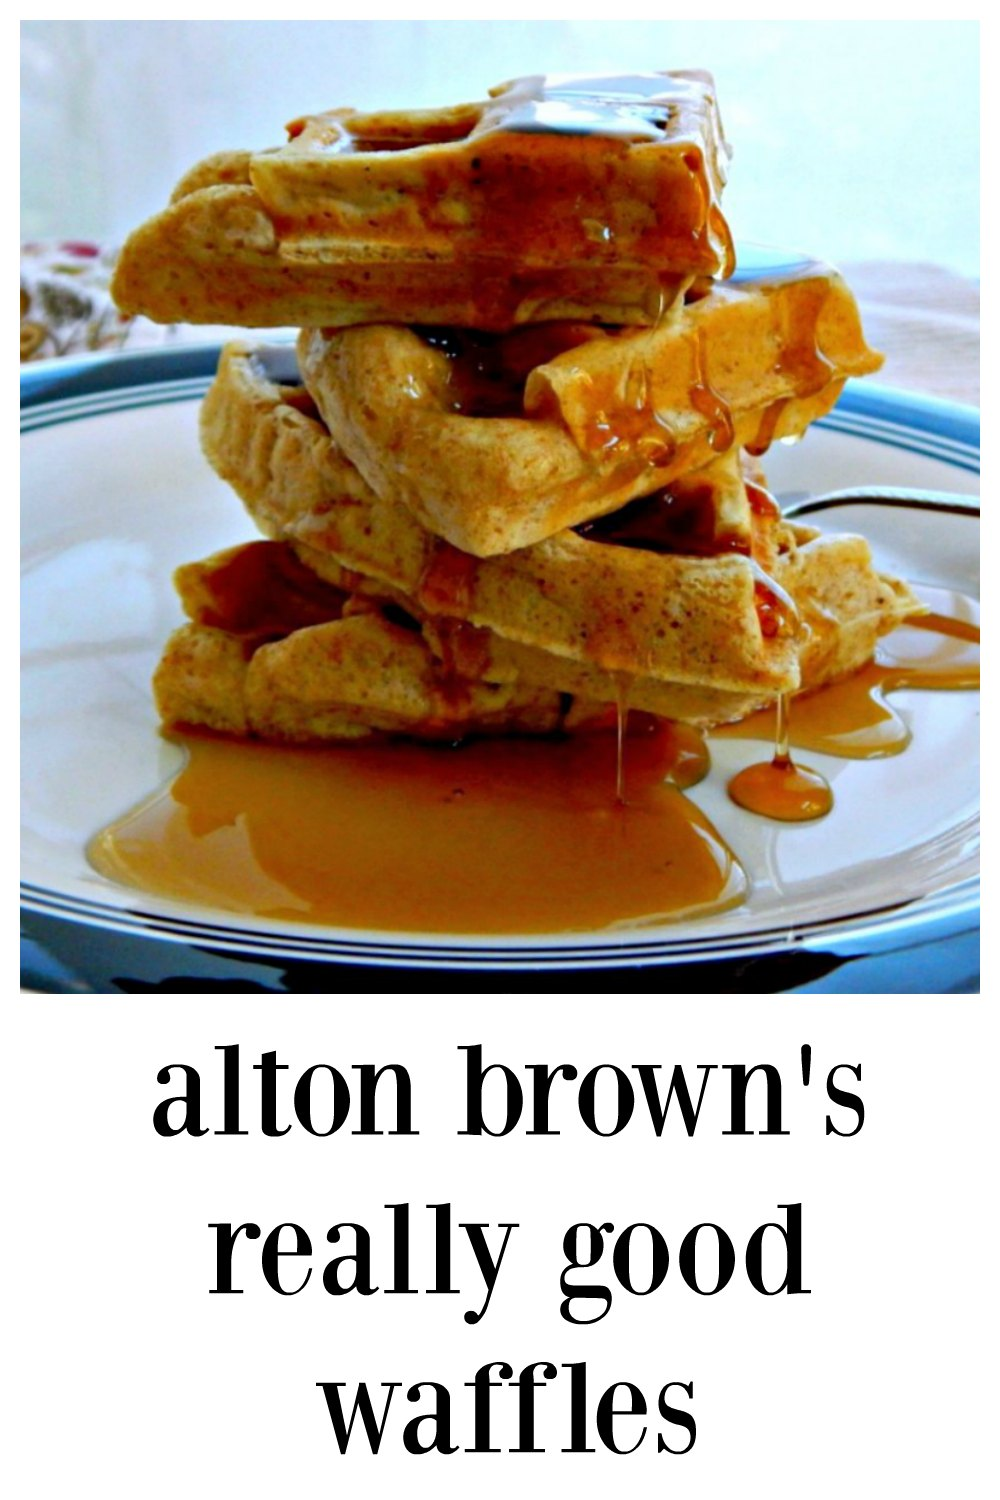 Alton Brown's Really Good Waffles are just that! Really good waffles with very little fuss or bother. Nice and crispy and tender inside. #AltonBrownWaffles #AltonBrownsReallyGoodWaffles #ReallyGoodWaffles